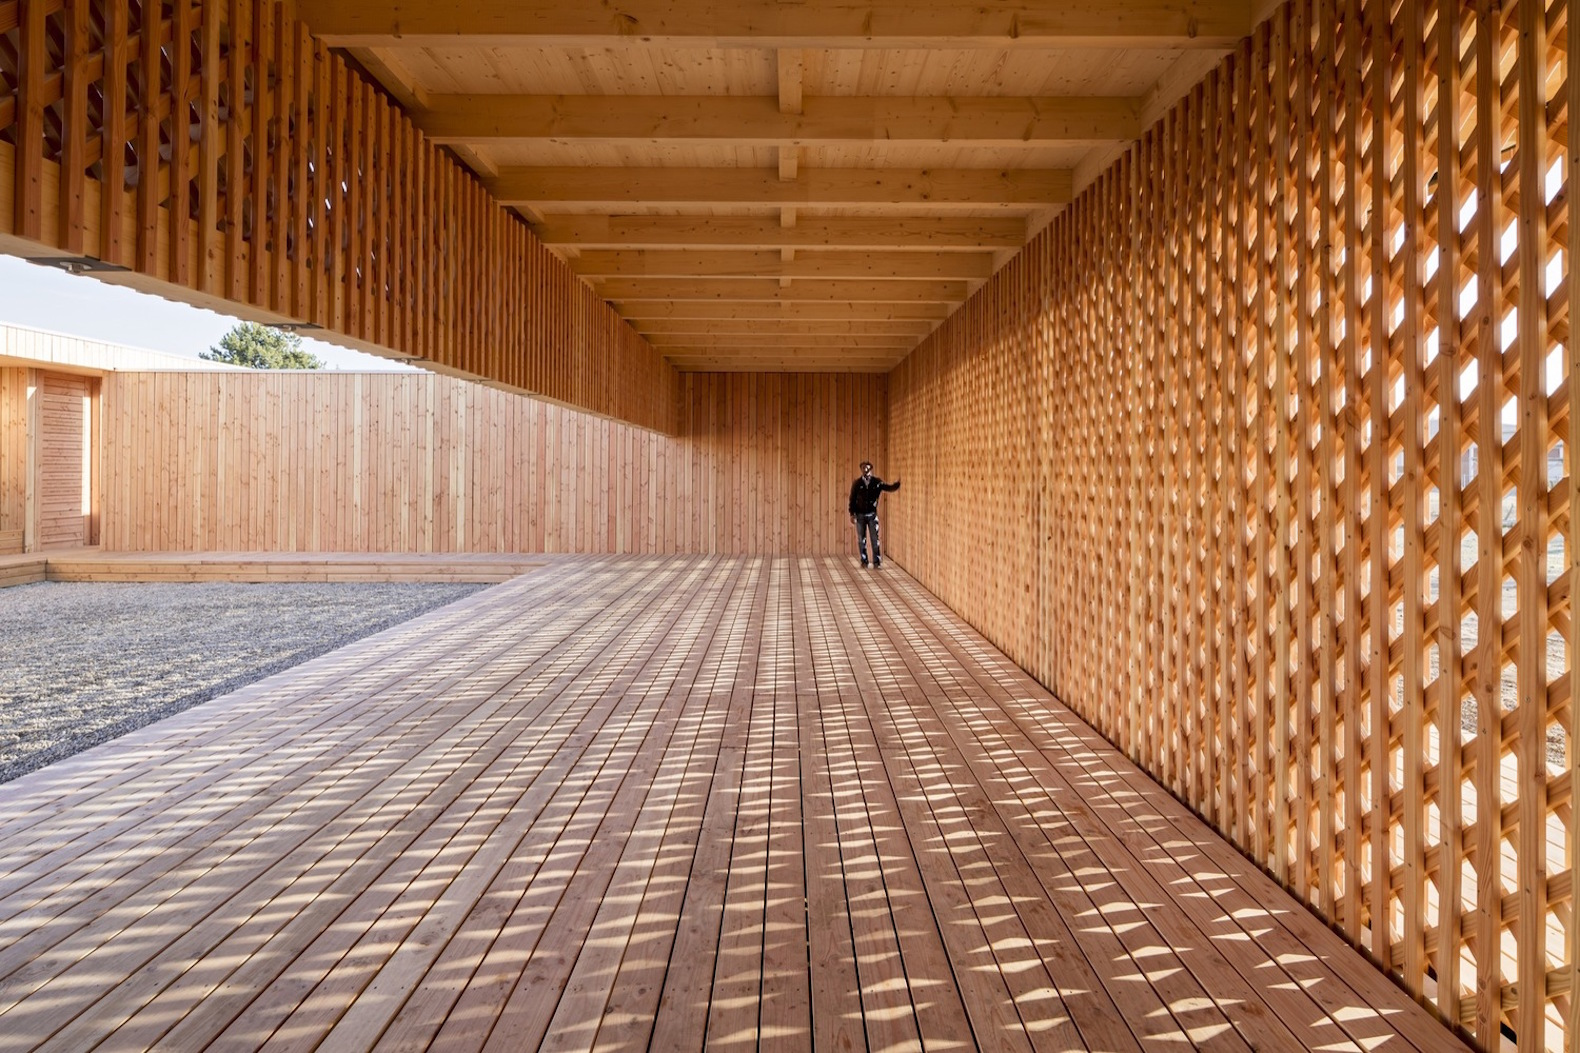 German architecture students and refugees build a beautiful timber community center